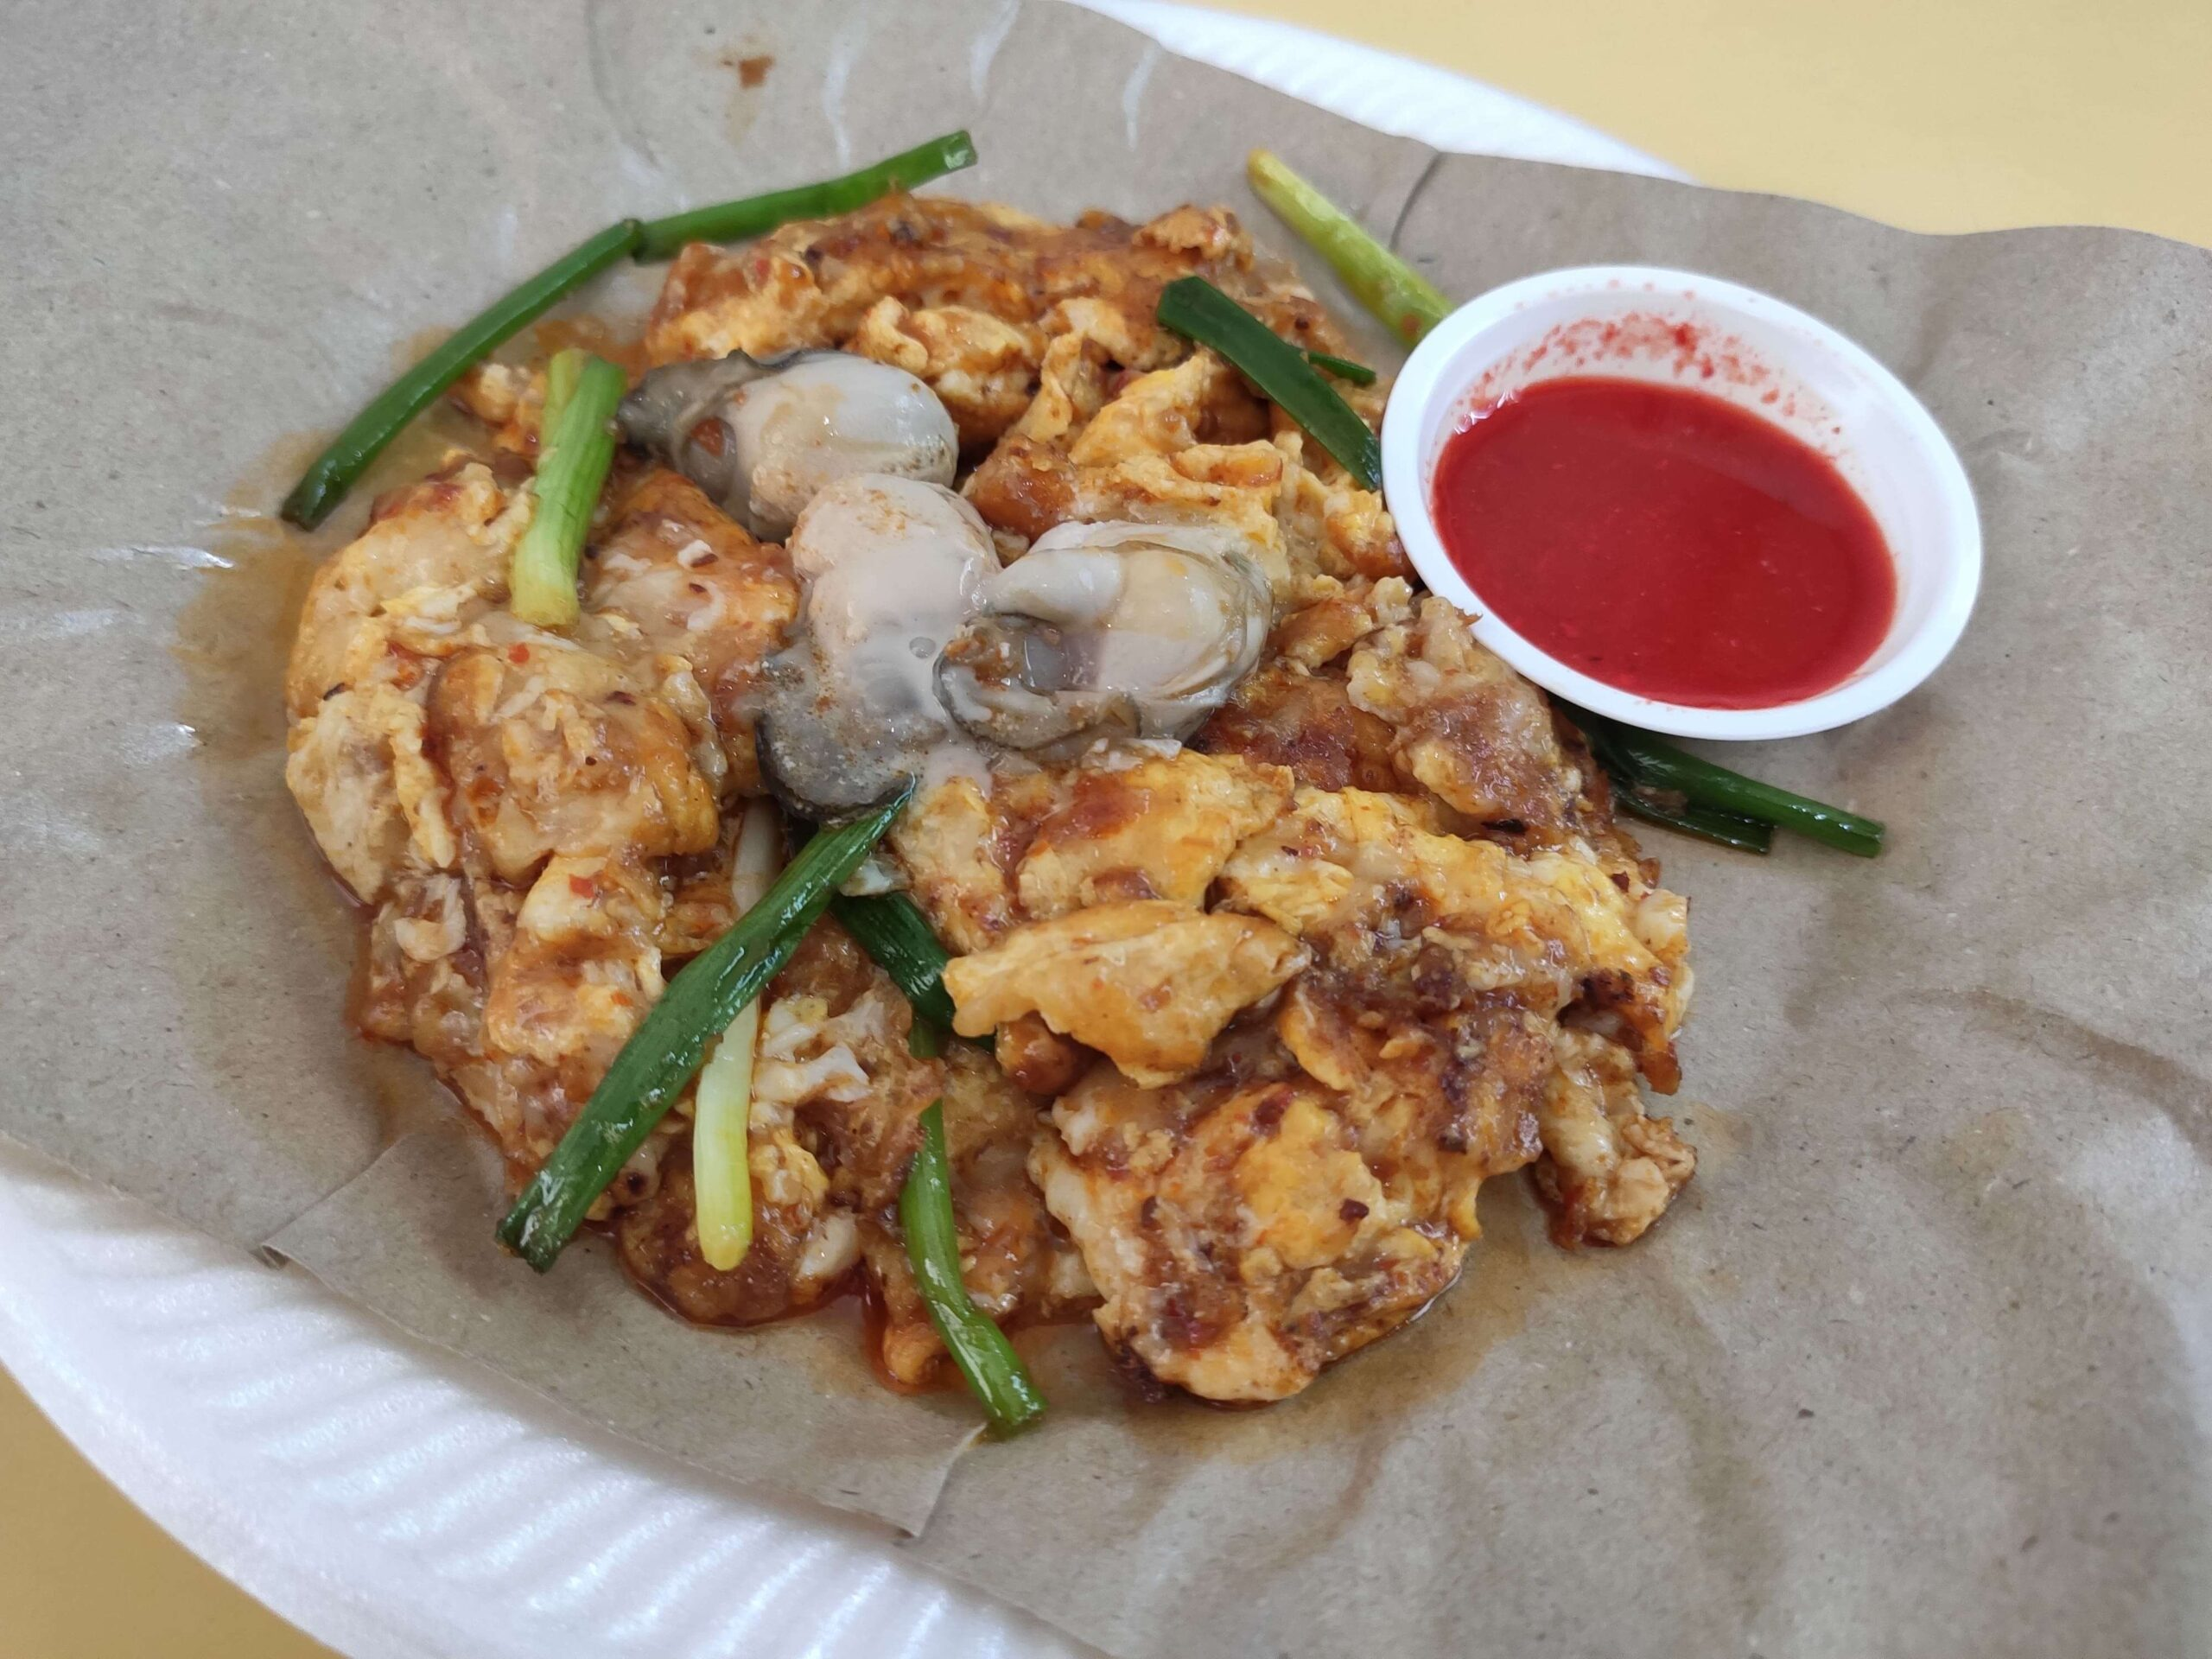 Xing Li Cooked Food: Fried Oyster Omelette